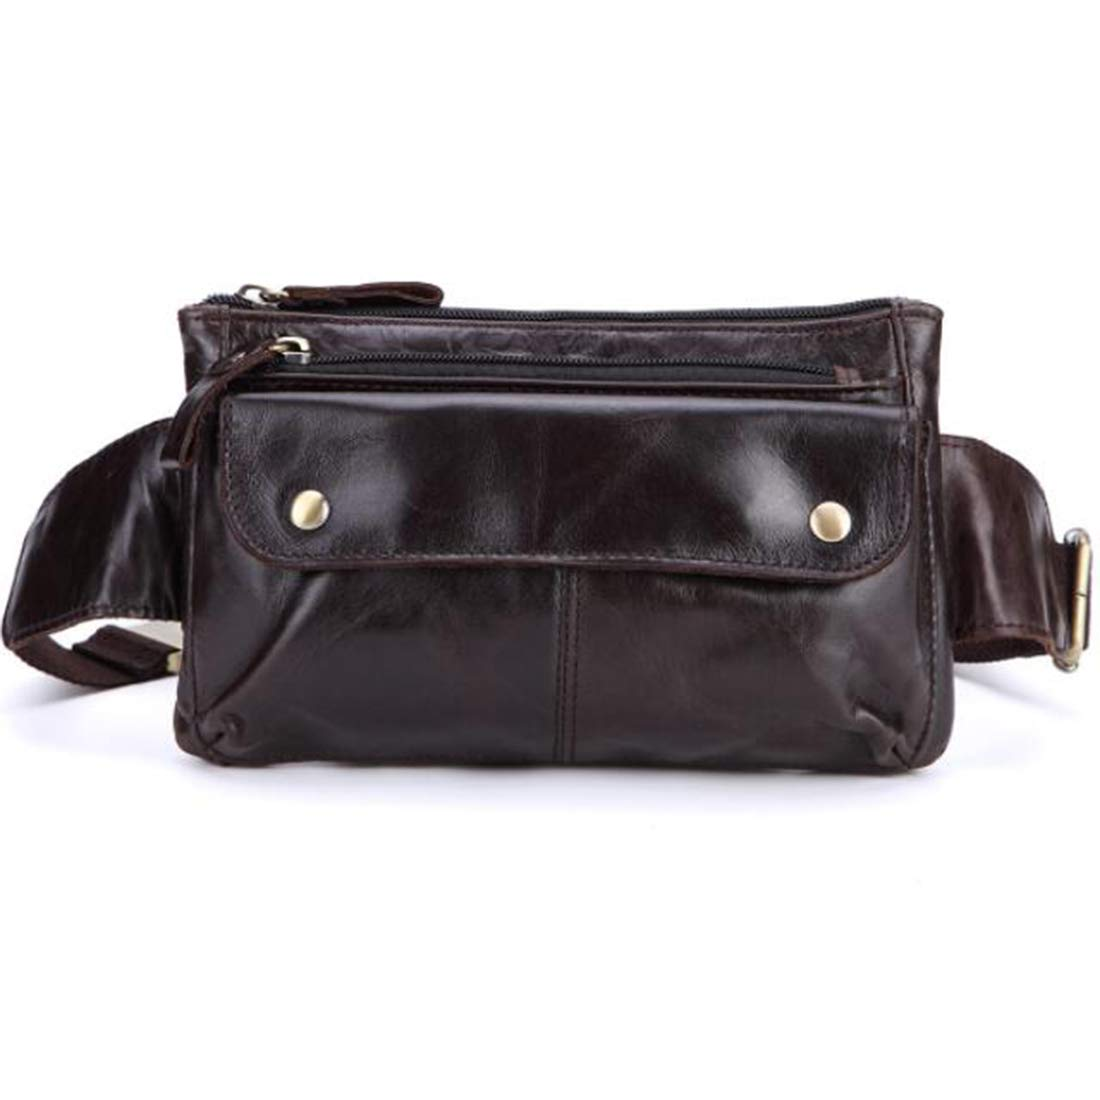 Color : Black b RABILTY Body Bag Waist Bag West Pouch 2way Mens Multifunction Cow Leather Made